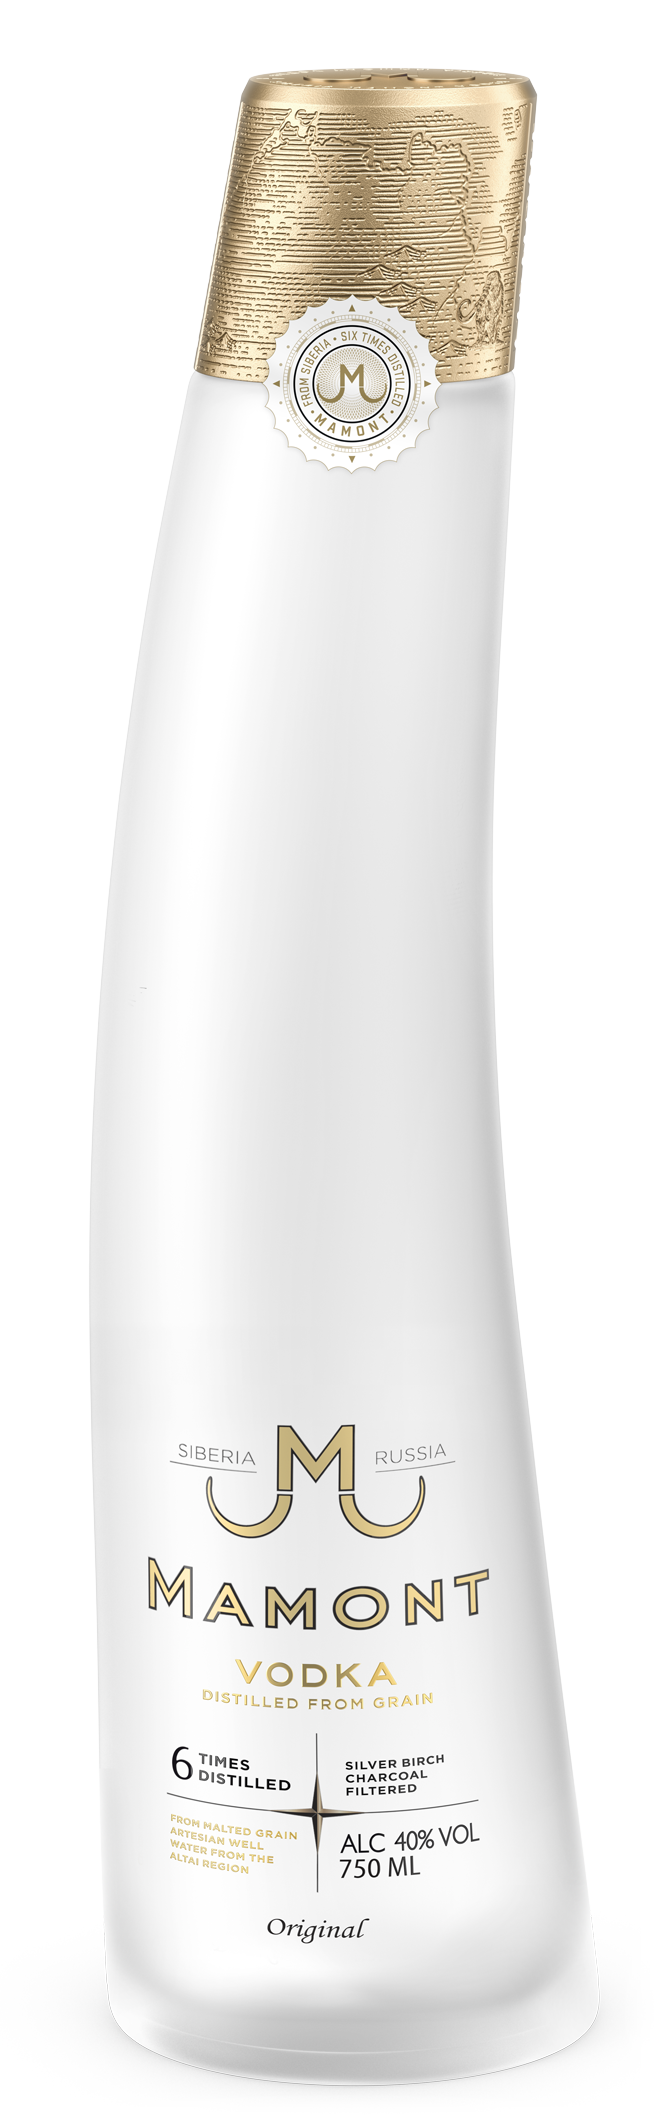 Mamont-Bottle-Small